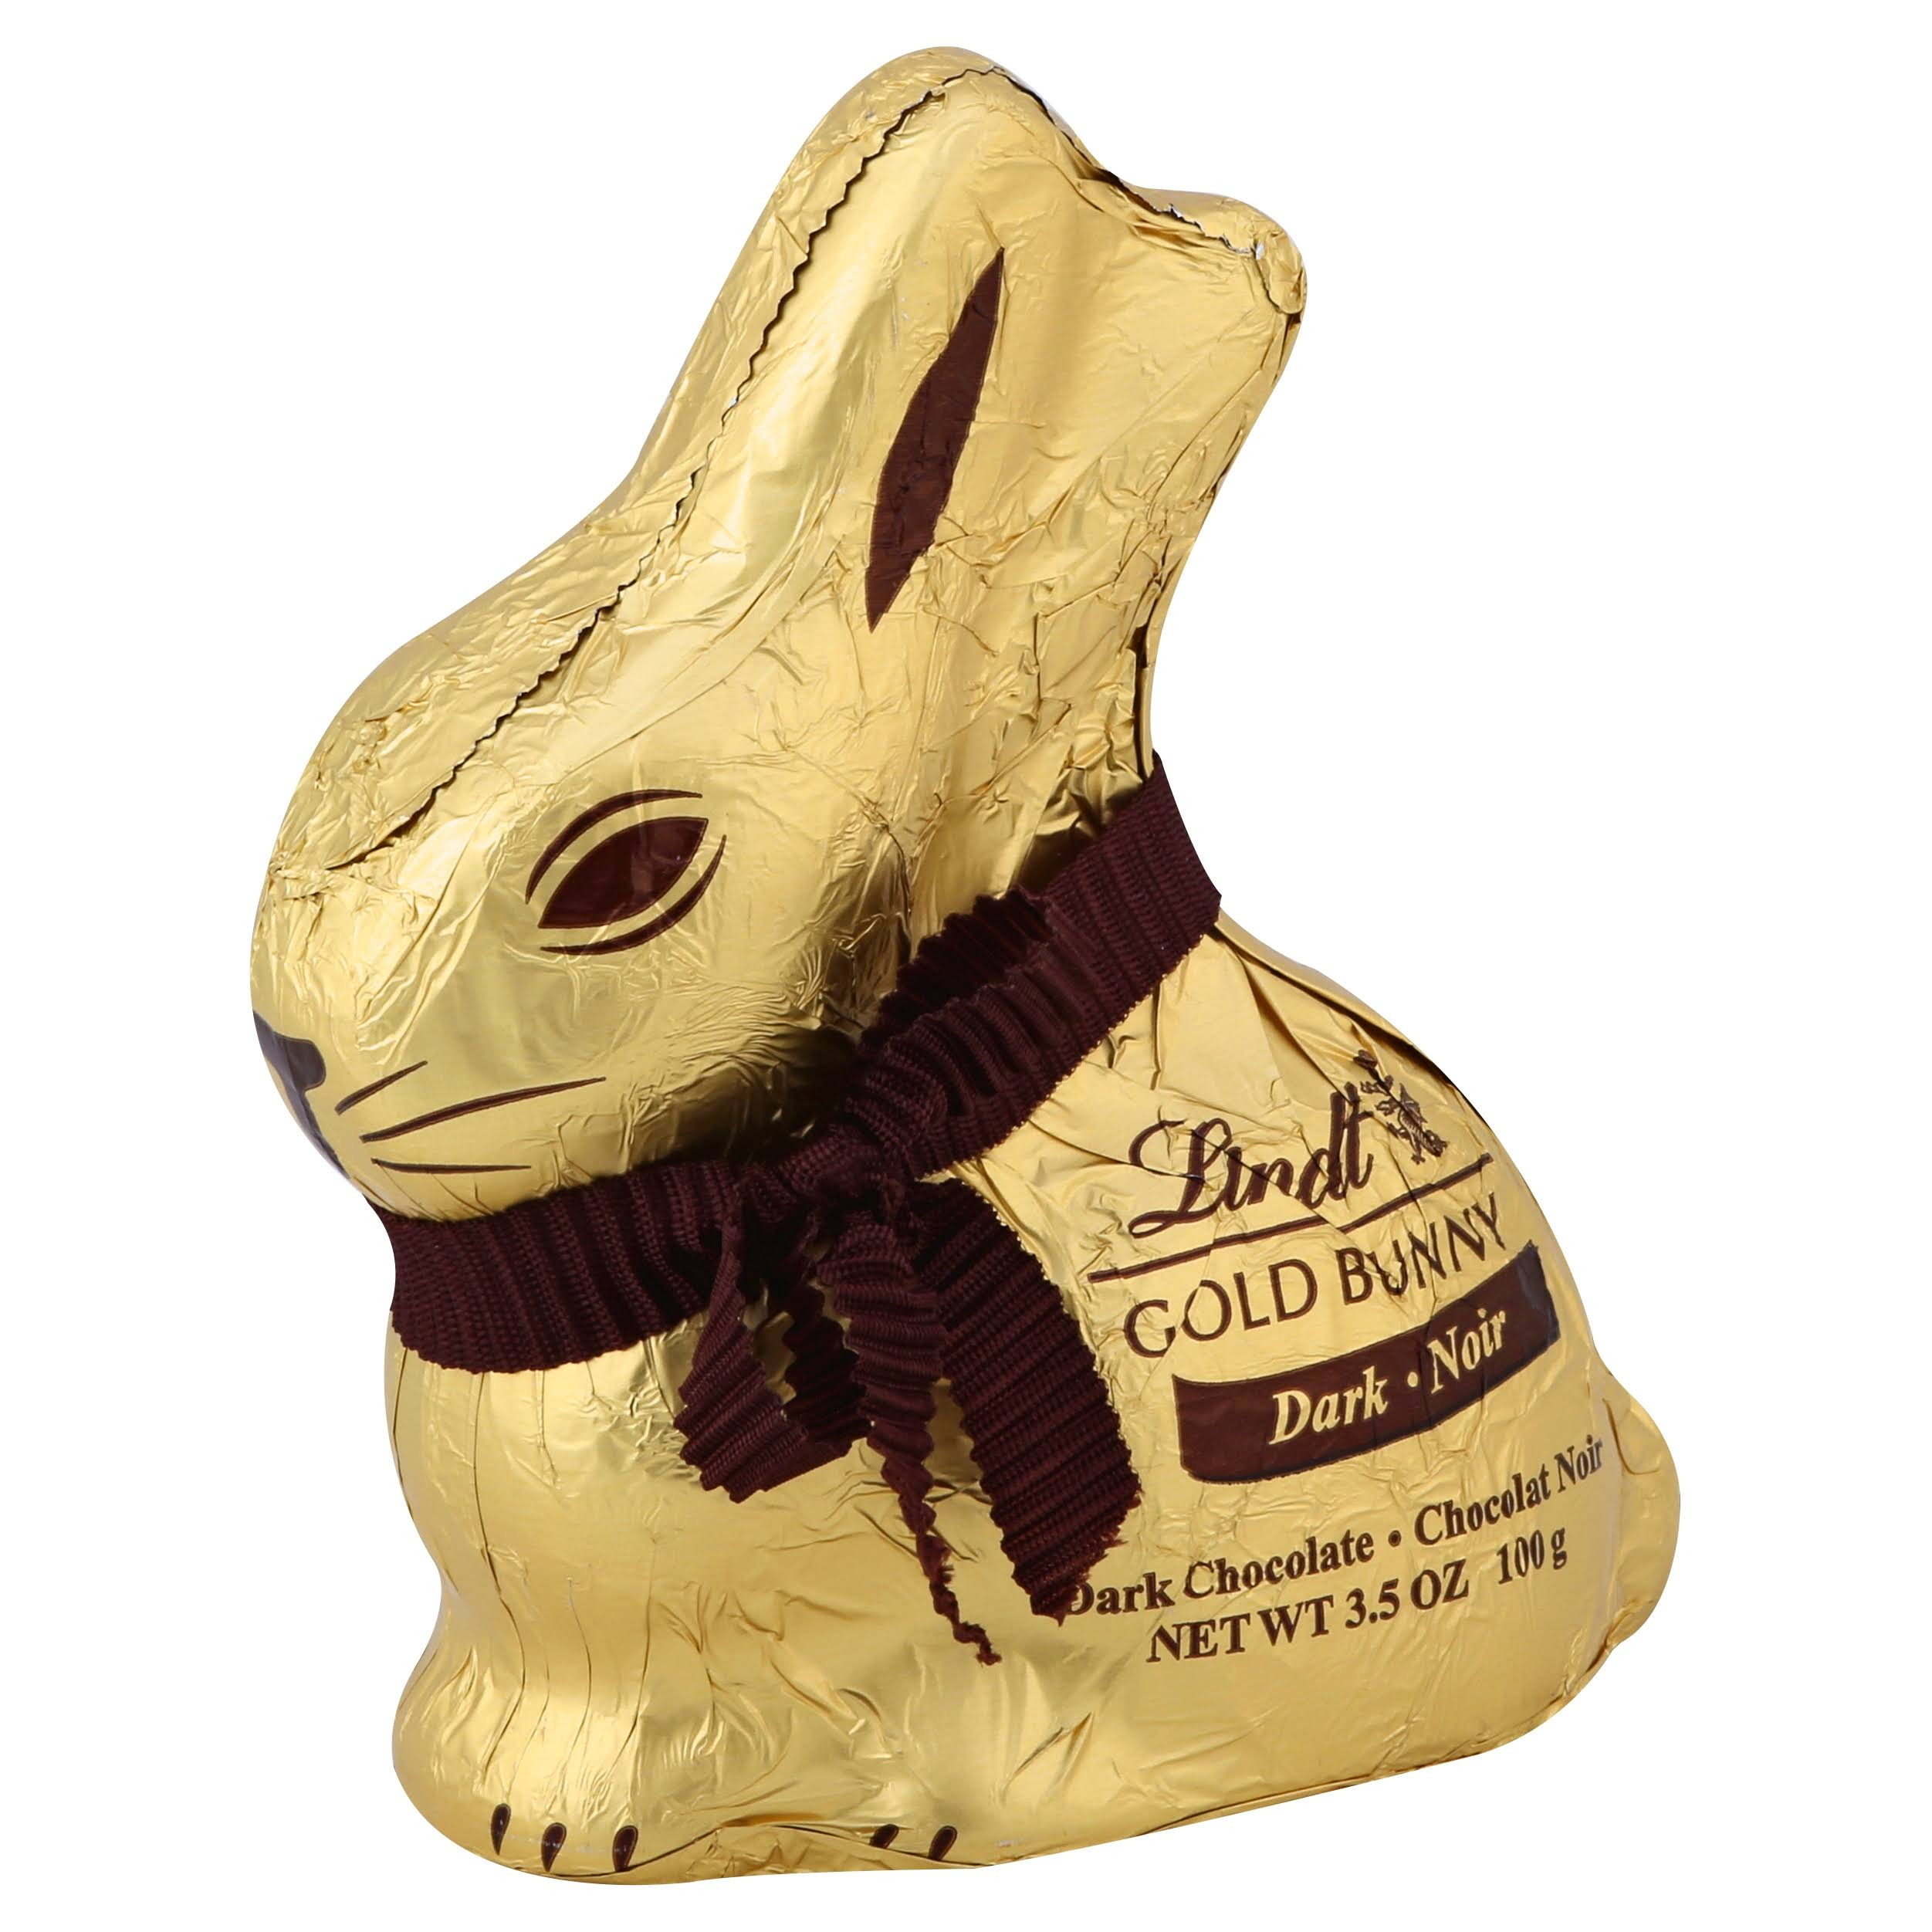 Lindt Gold Bunny Dark Chocolate - 100g